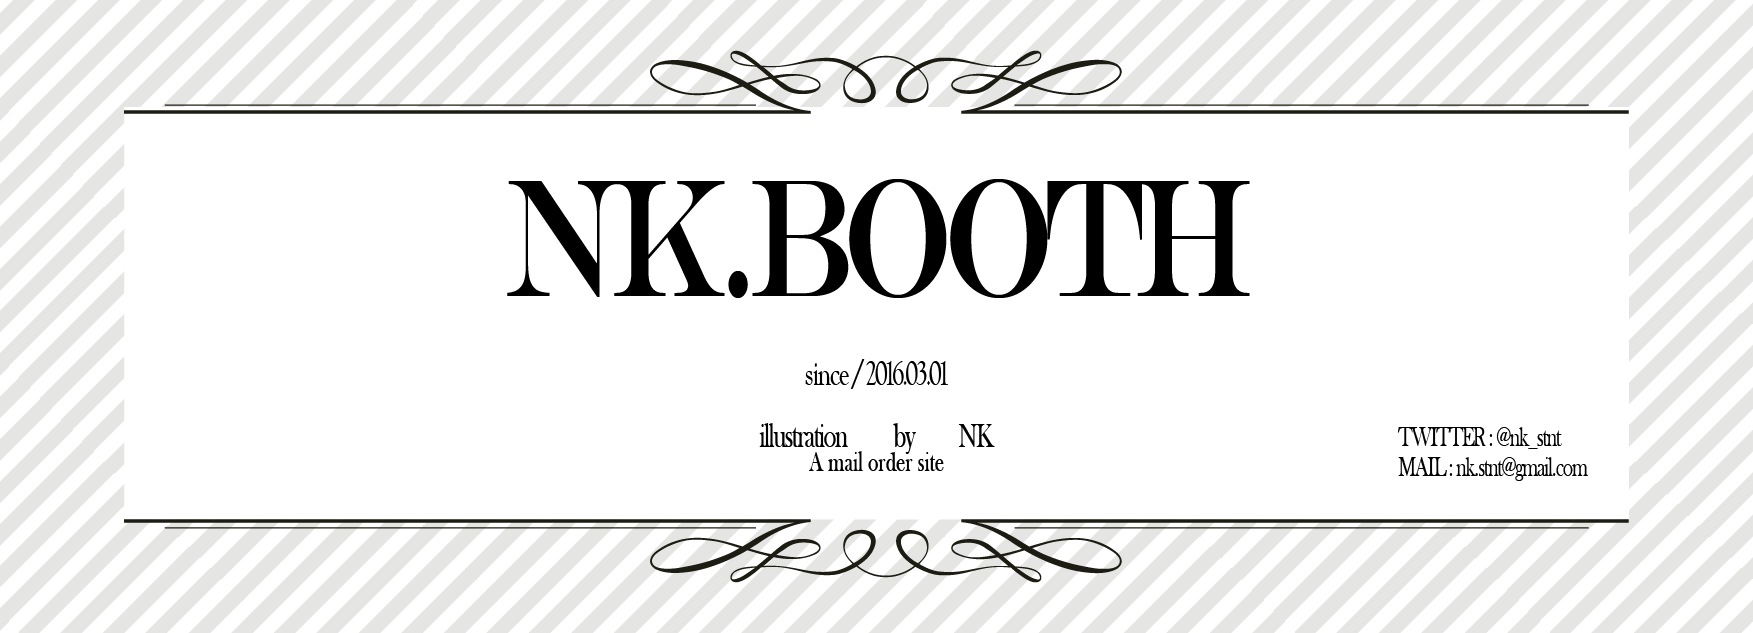 NK.BOOTH